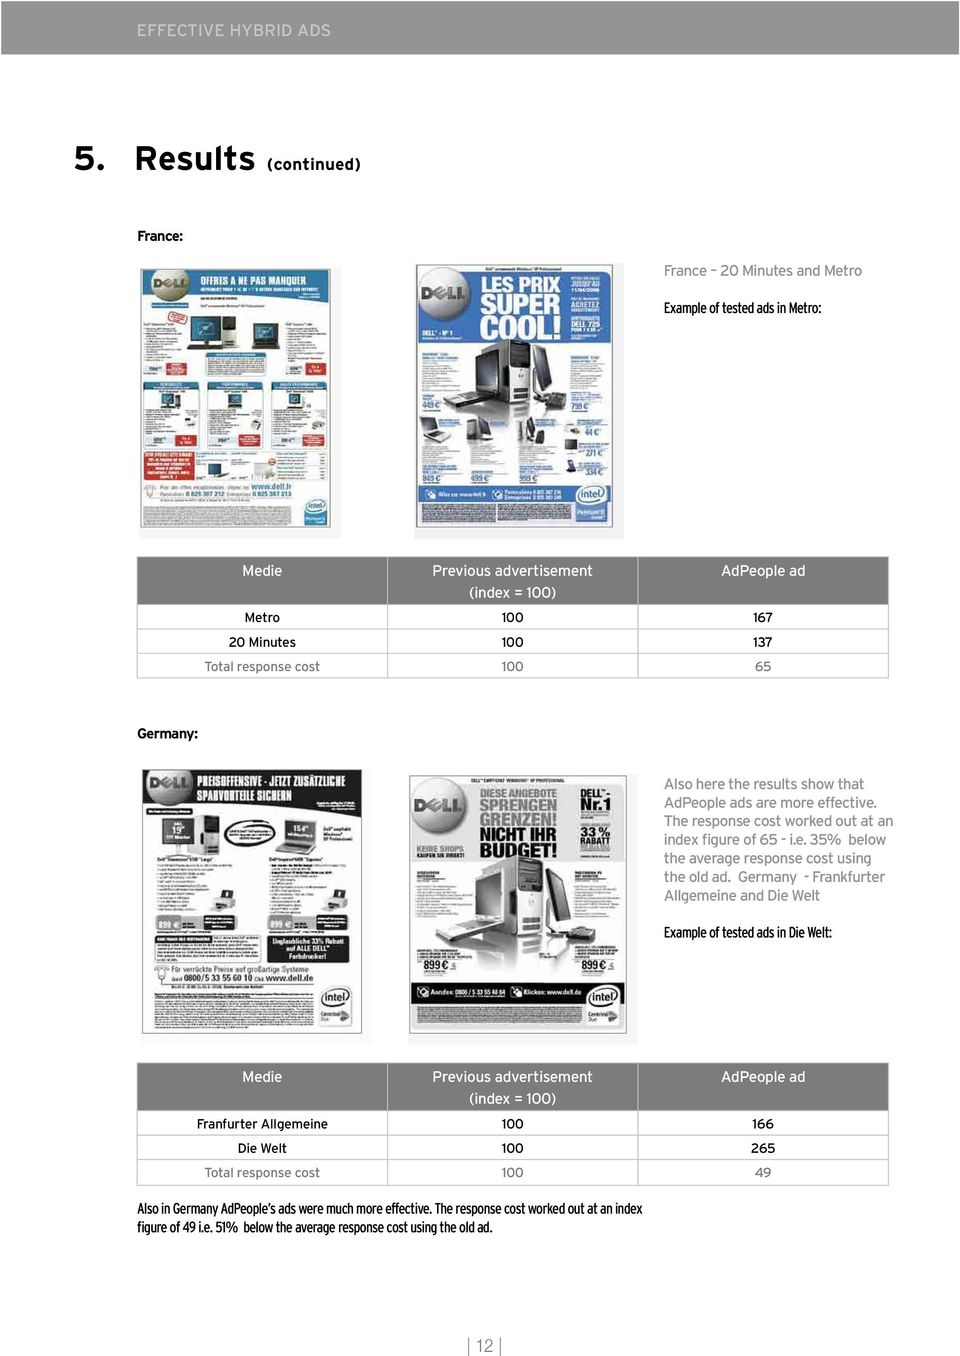 Germany - Frankfurter Allgemeine and Die Welt Example of tested ads in Die Welt: Medie Previous advertisement AdPeople ad (index = 100) Franfurter Allgemeine 100 166 Die Welt 100 265 Total